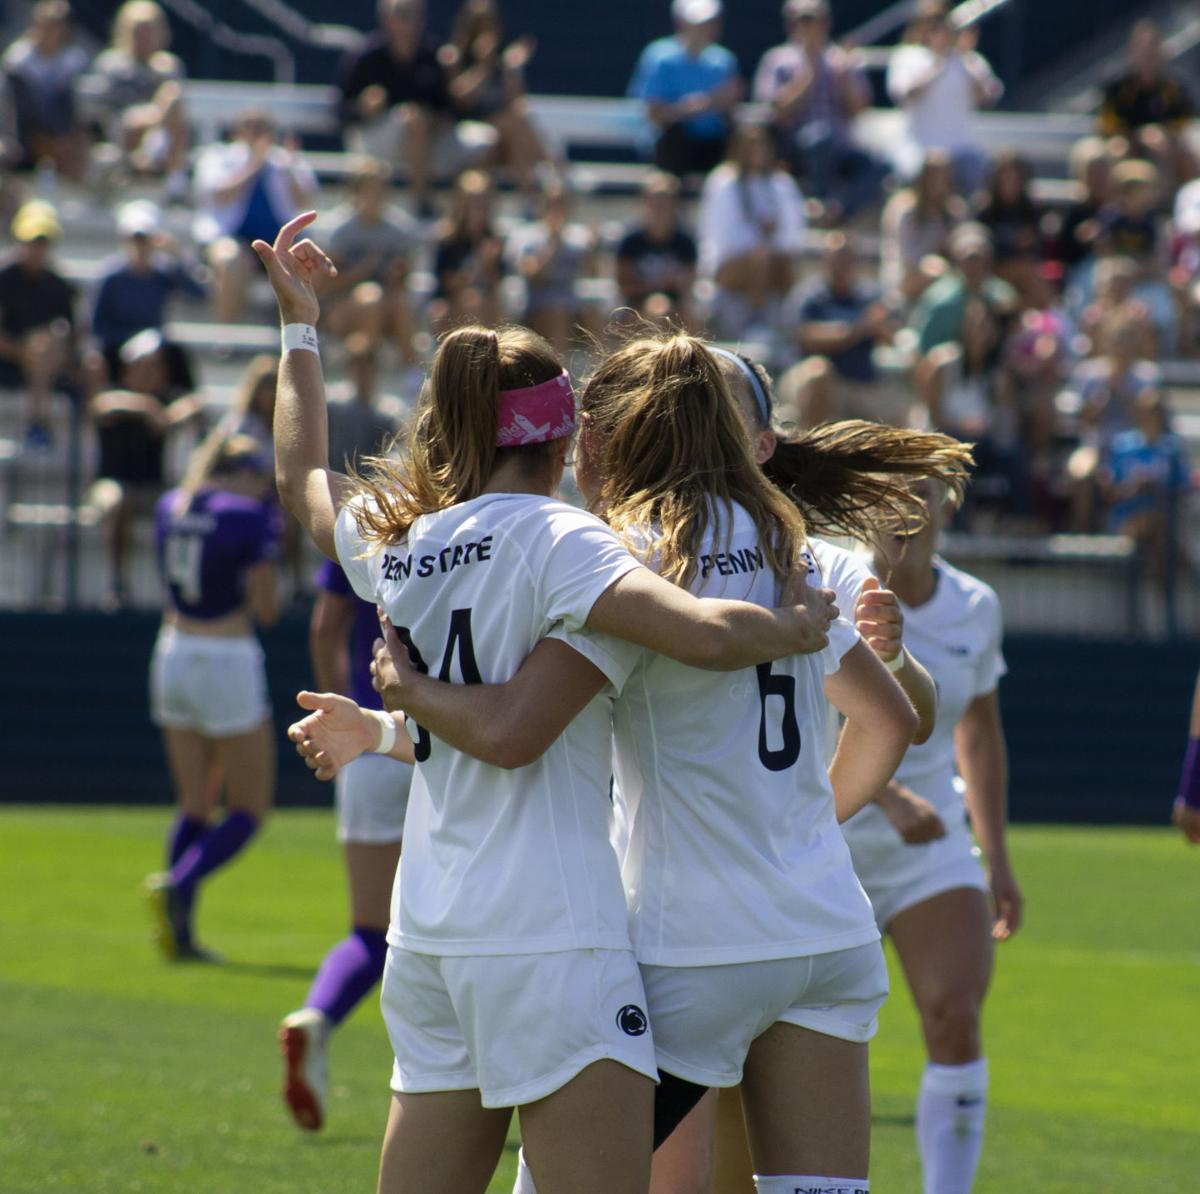 Penn State Women's Soccer vs. James Madison University